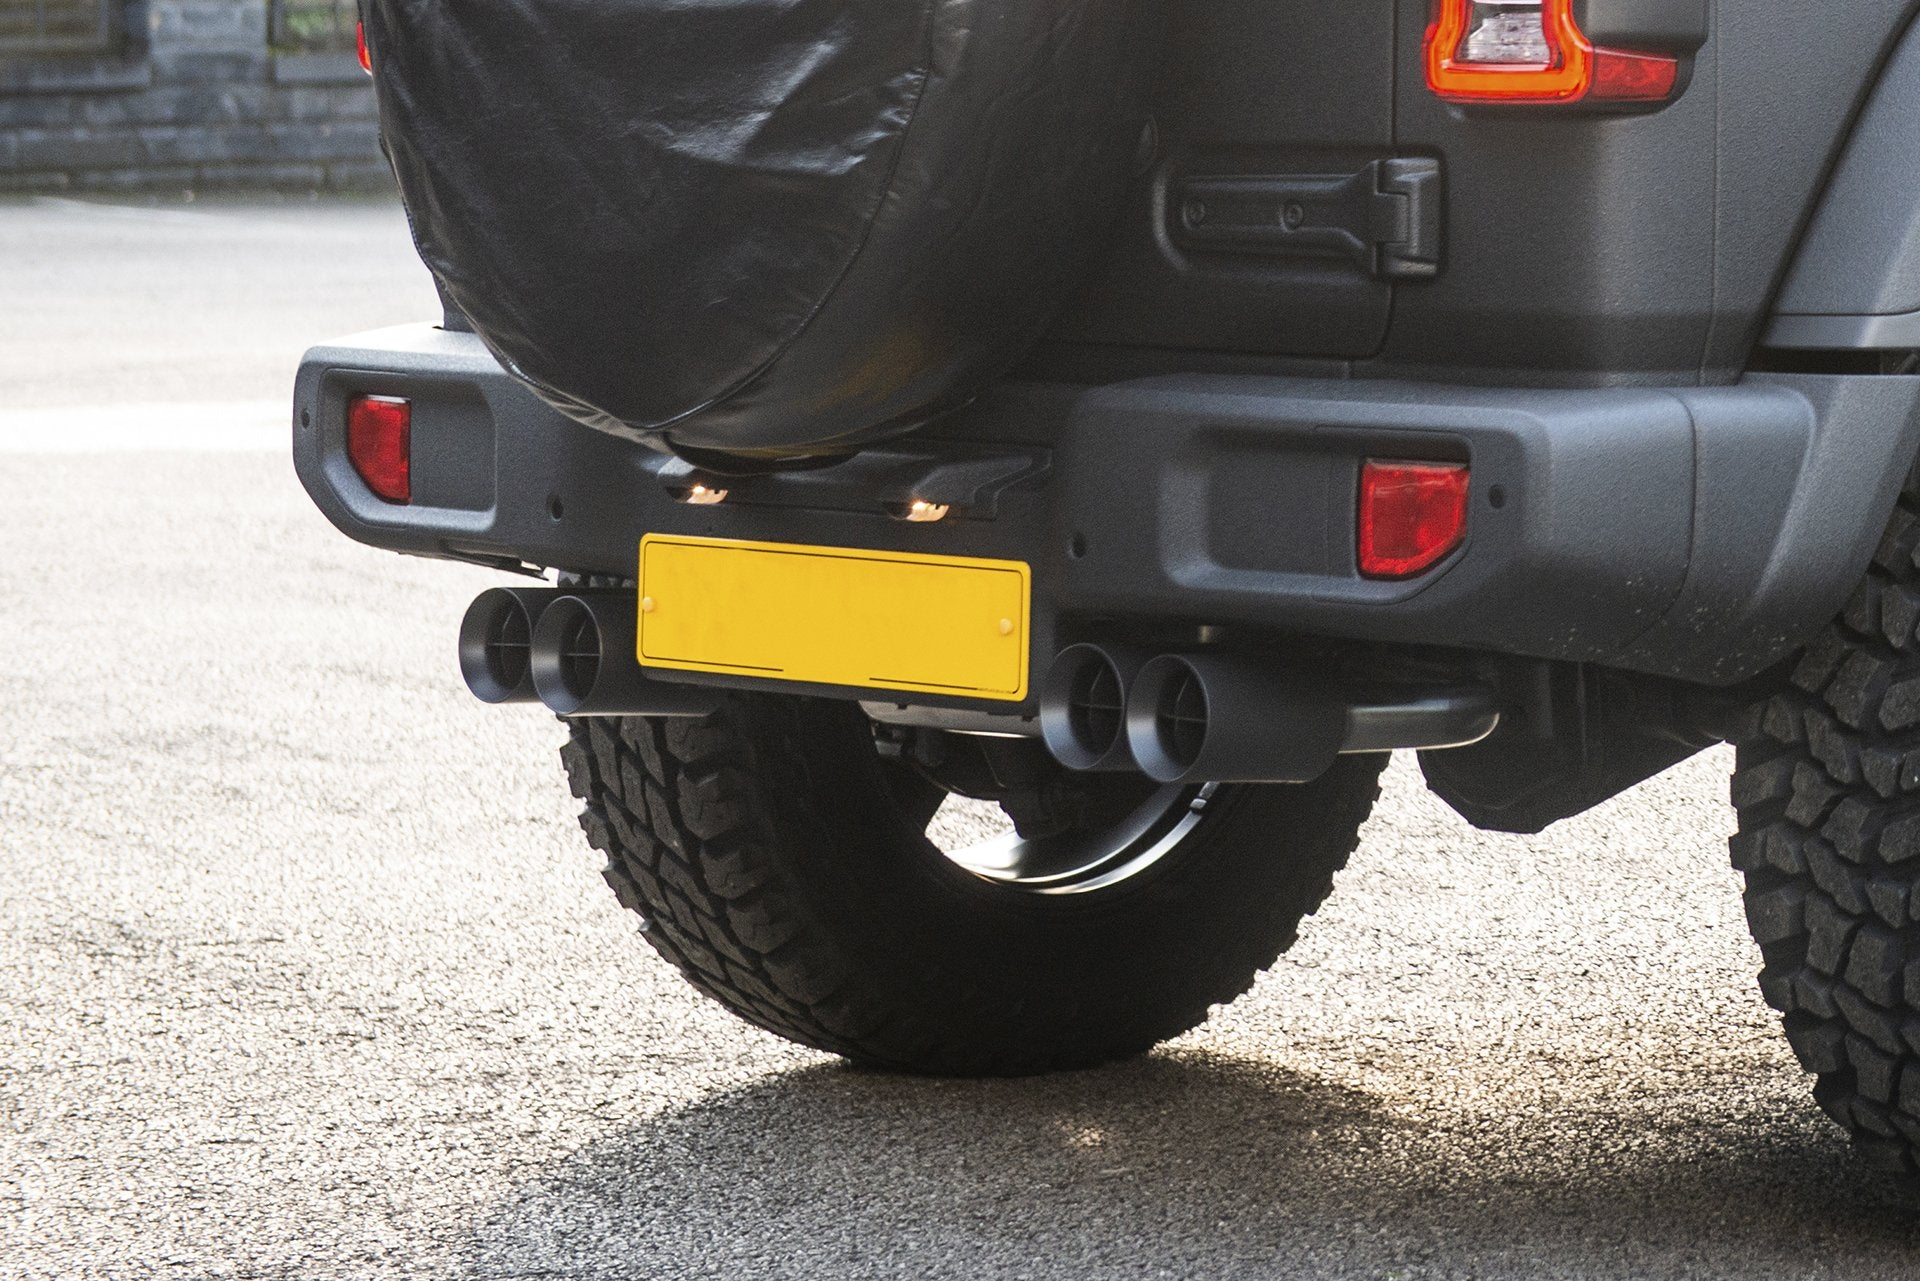 Jeep Wrangler Jl (2018-Present) 4 Door Quad Crosshair Exhaust System In Matt Black Image 5052